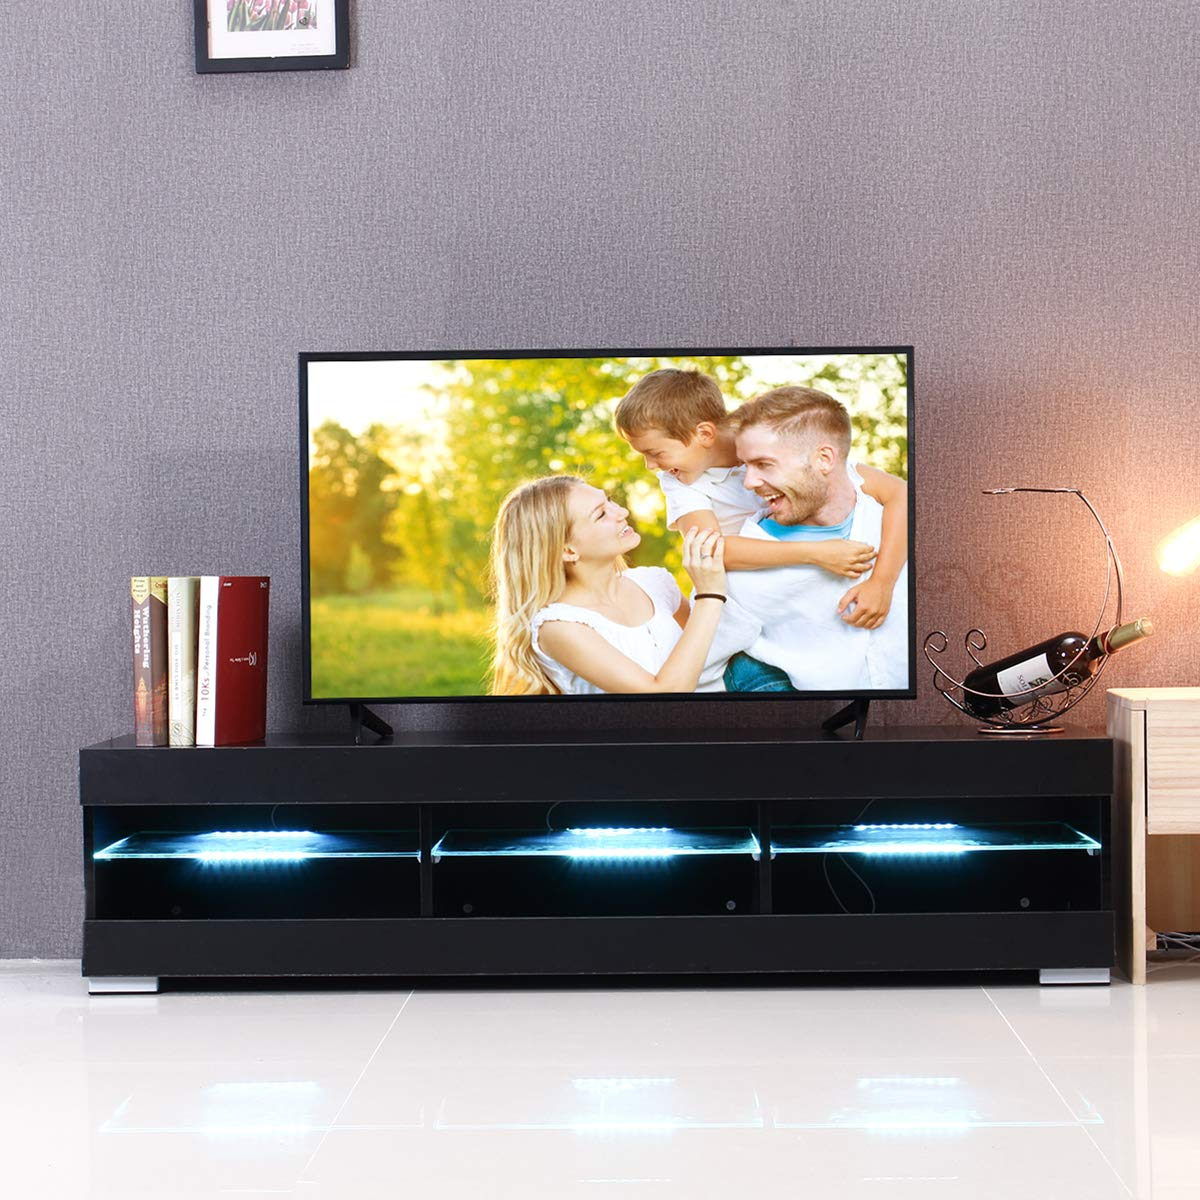 KINGSO TV Stand for 55 Inch TV, TV Stands with Led Lights Entertainment Center, High Gloss TV Table TV Cabinet Modern TV Console Living Room Furniture – Black